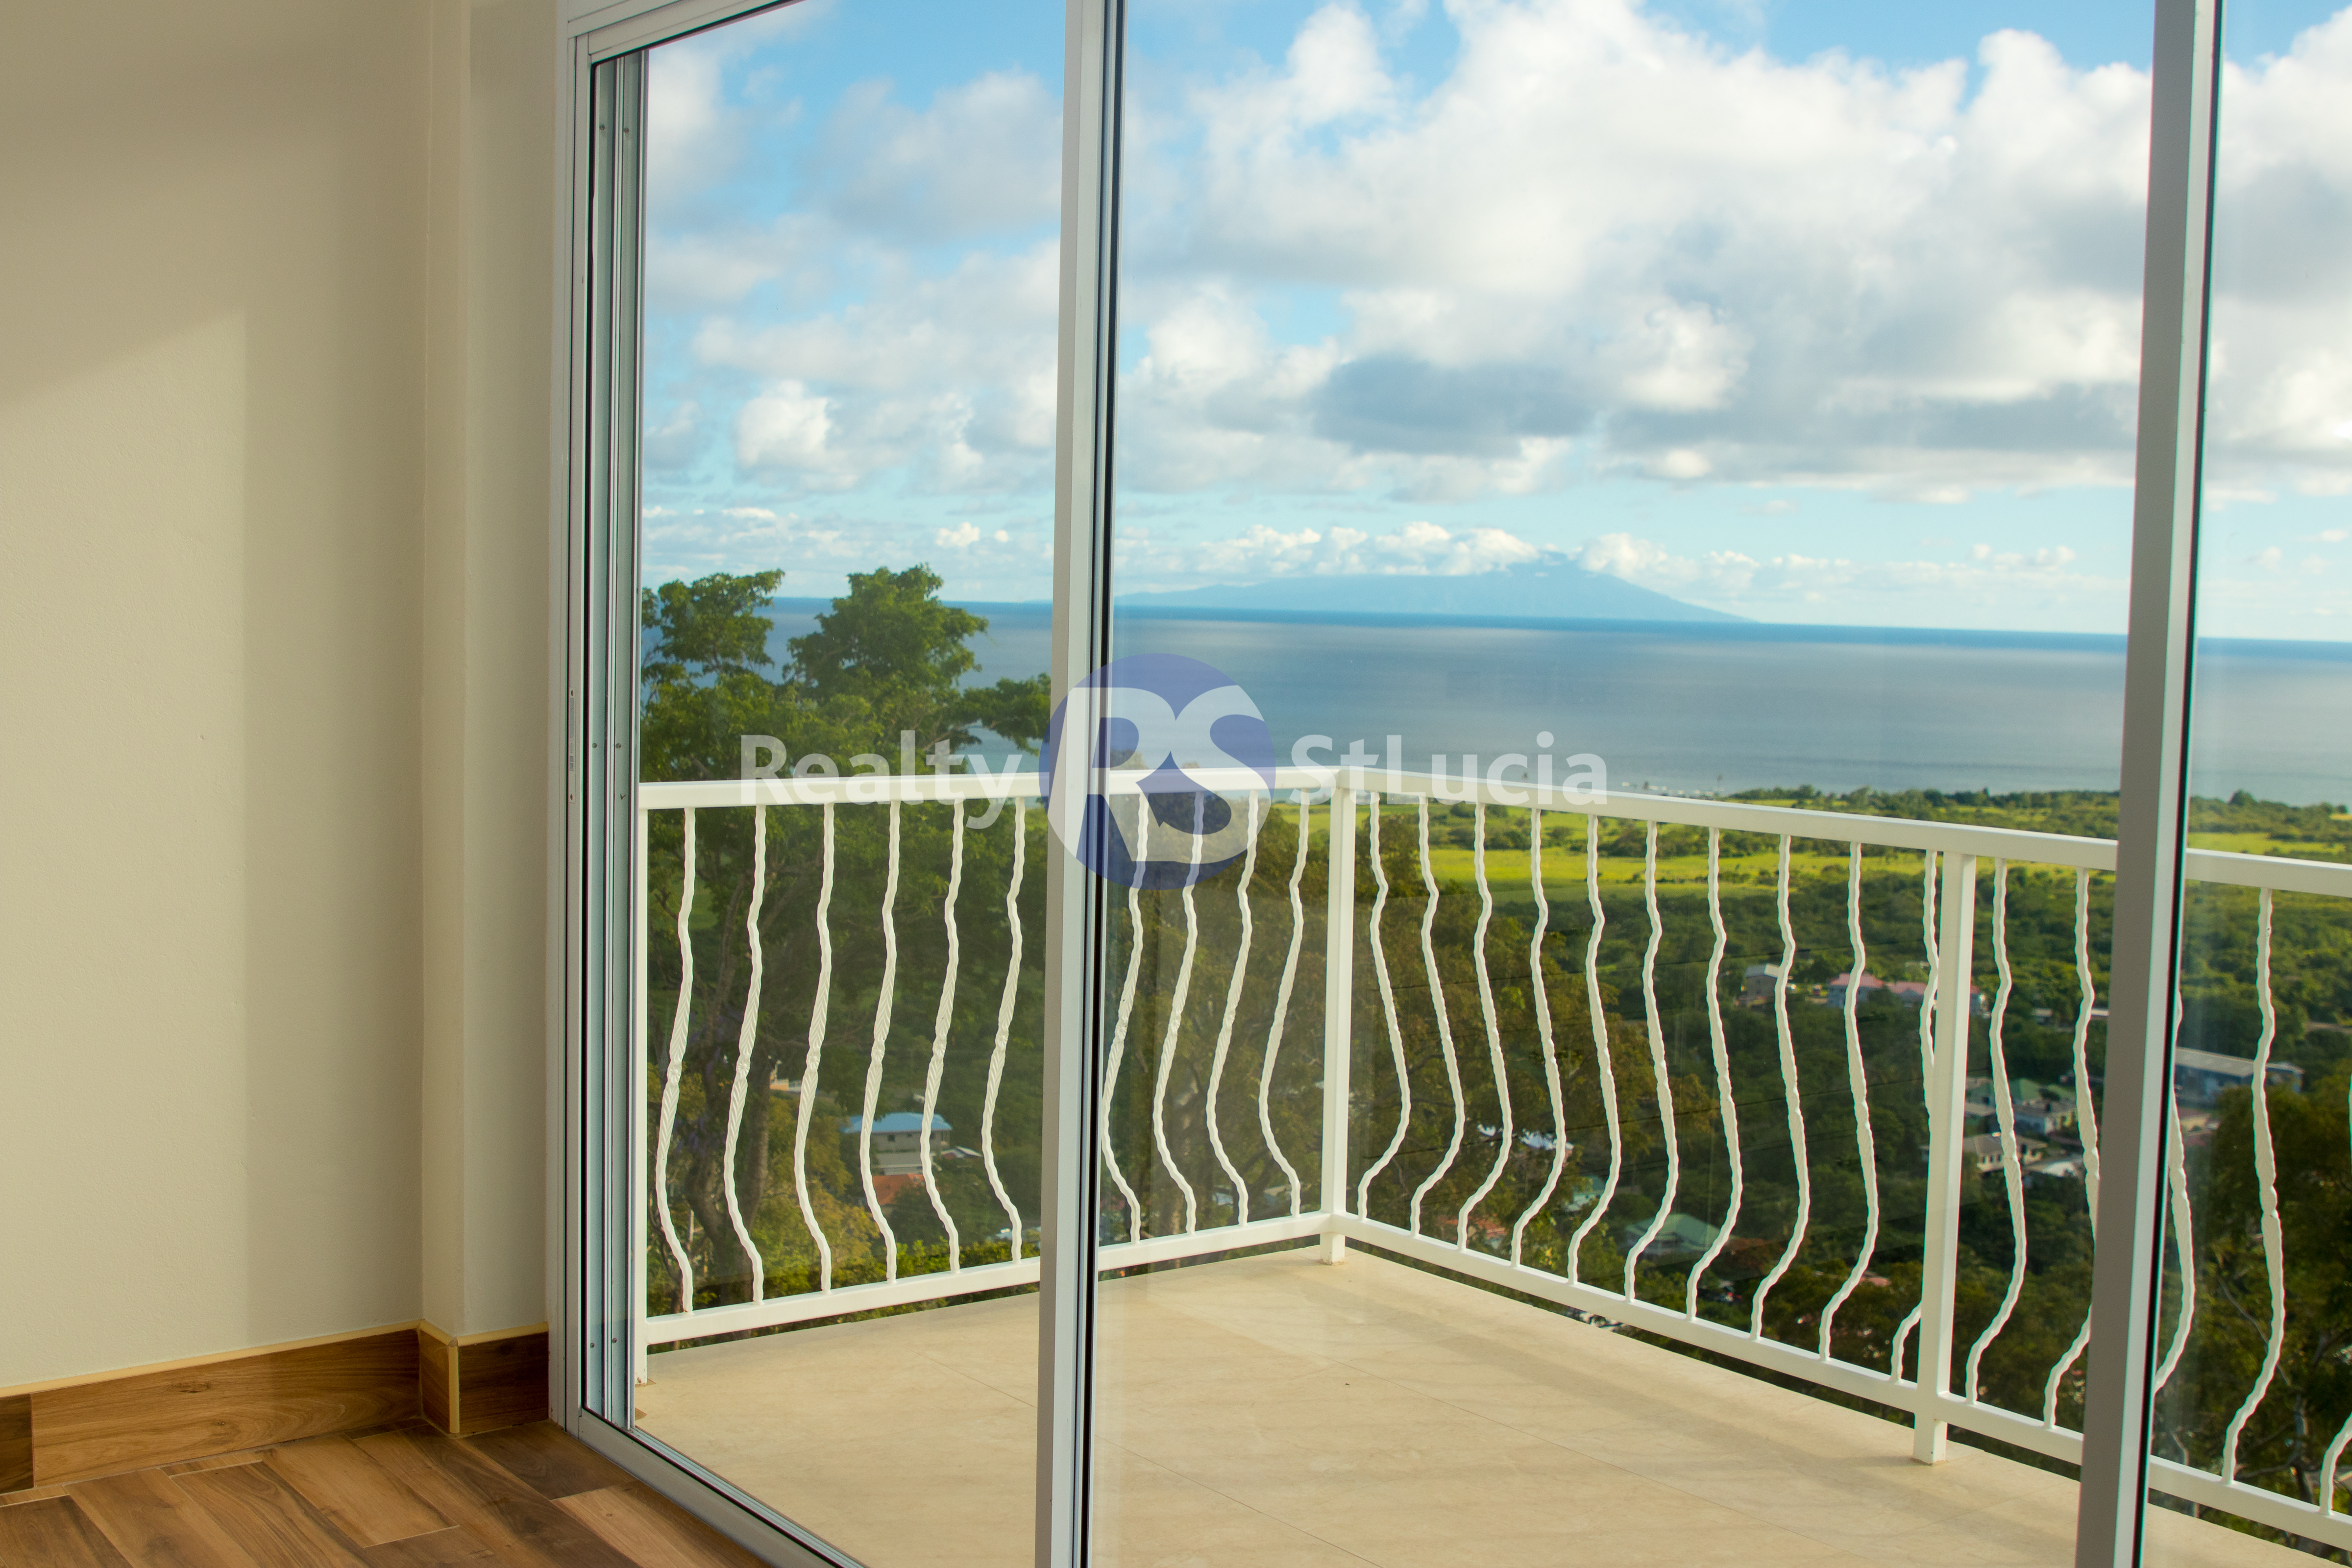 view of house for sale in st lucia